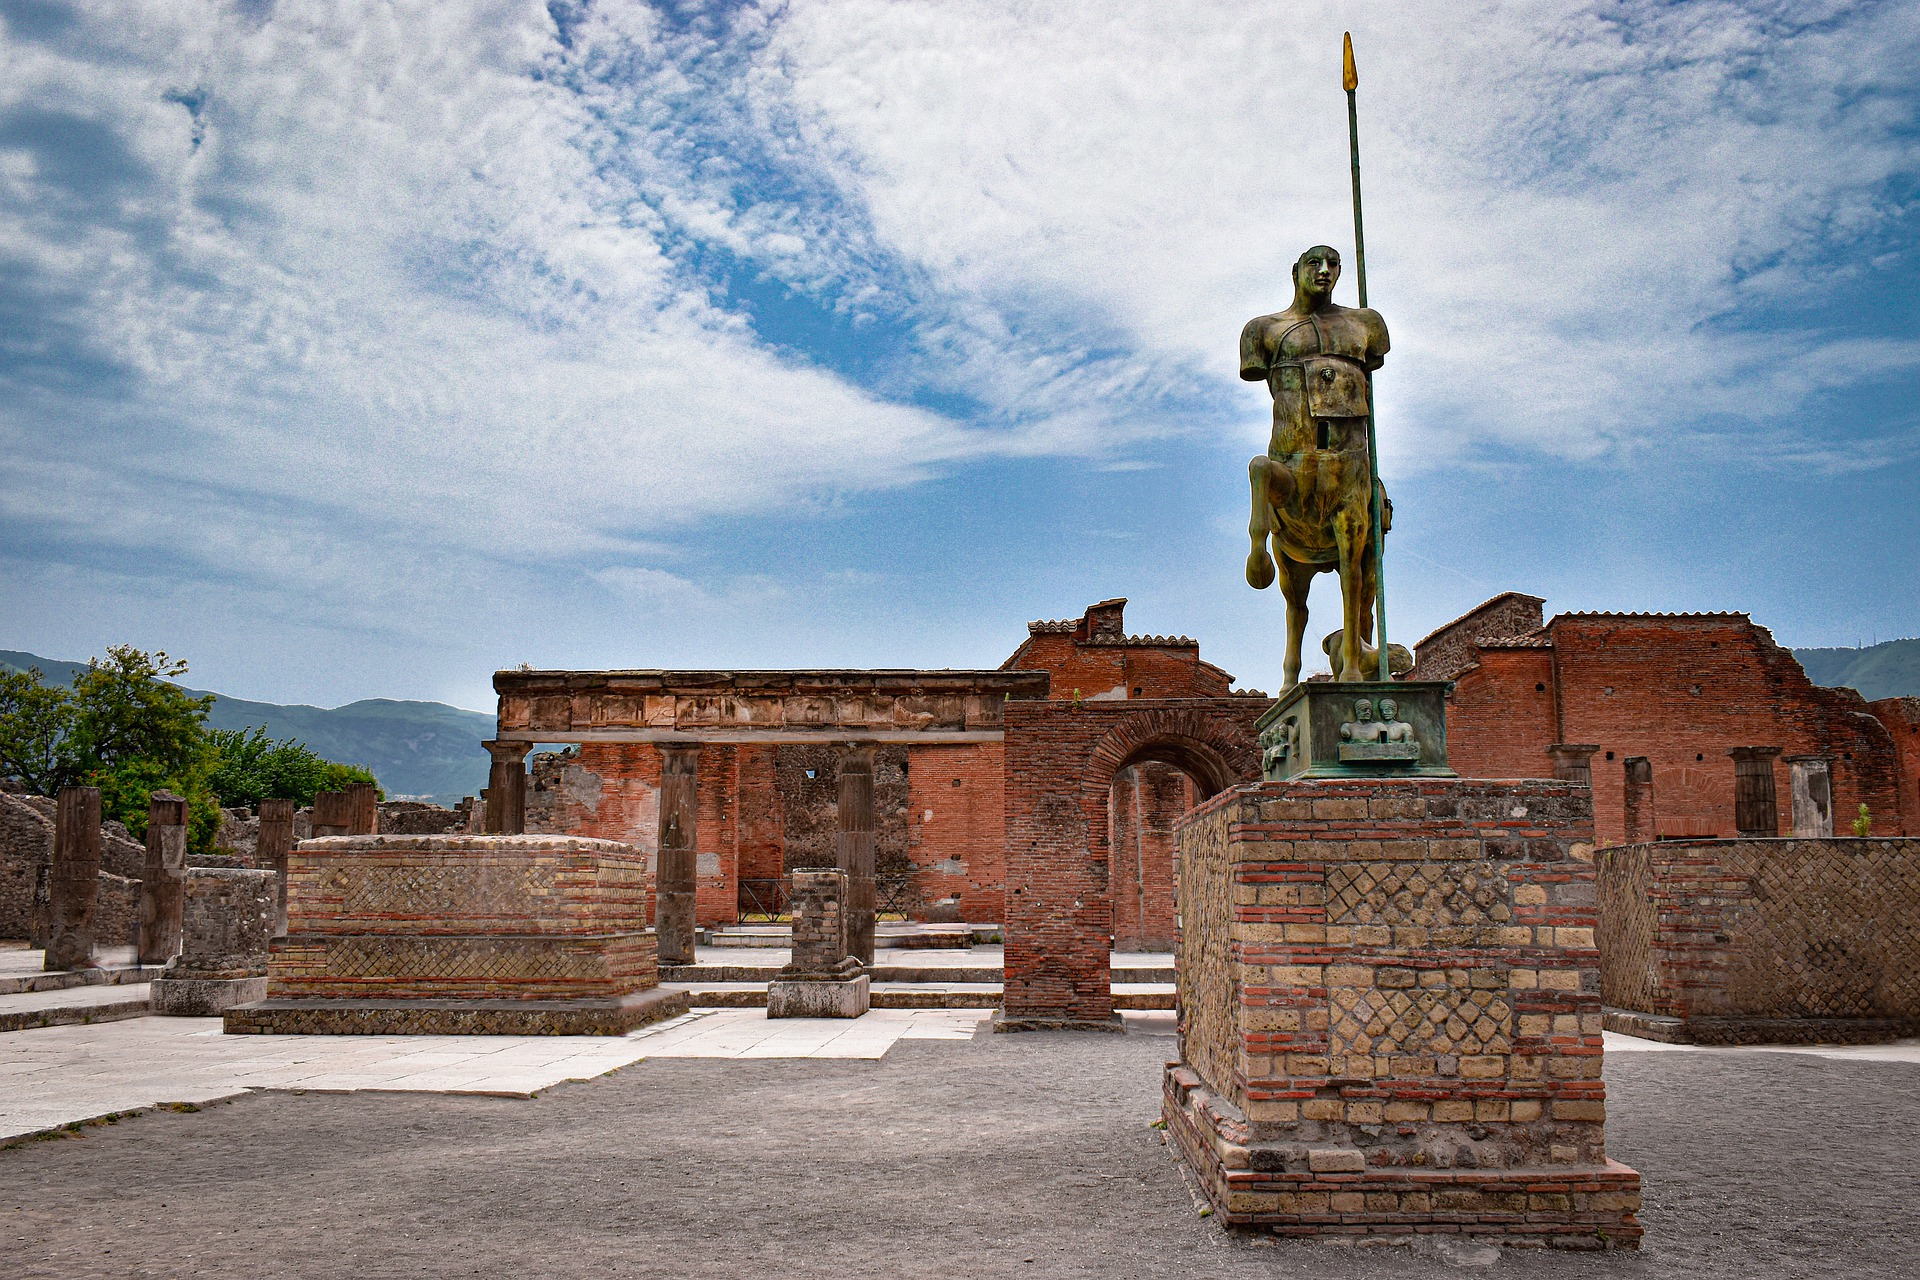 A statue of Pompeyi the Great in Ancient Rome